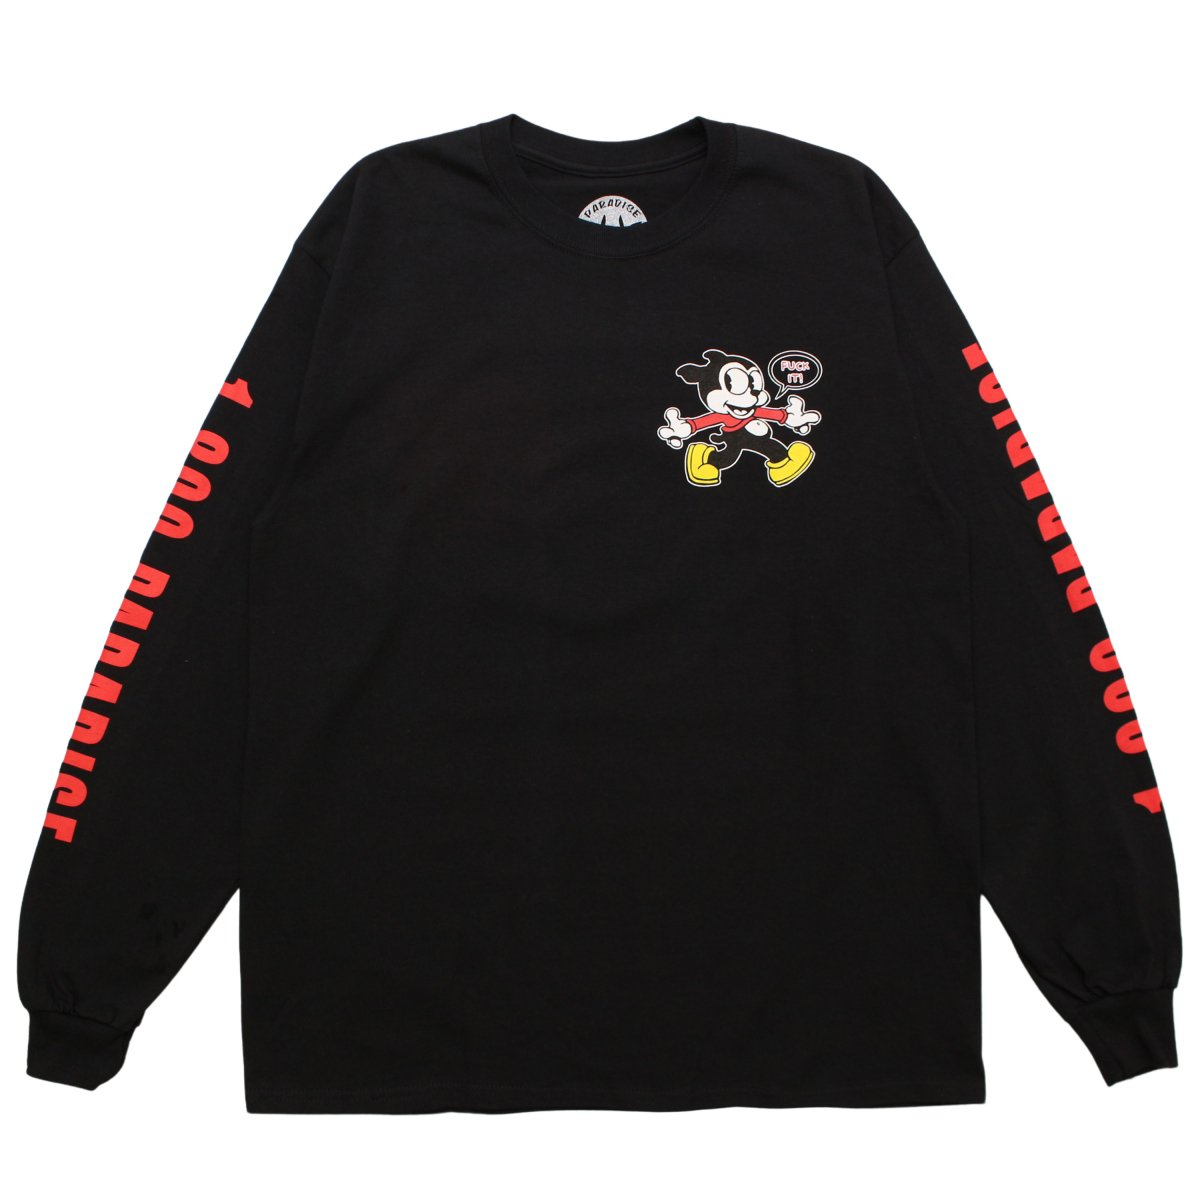 PARADISE BAIL BONDS LS 【BLACK】